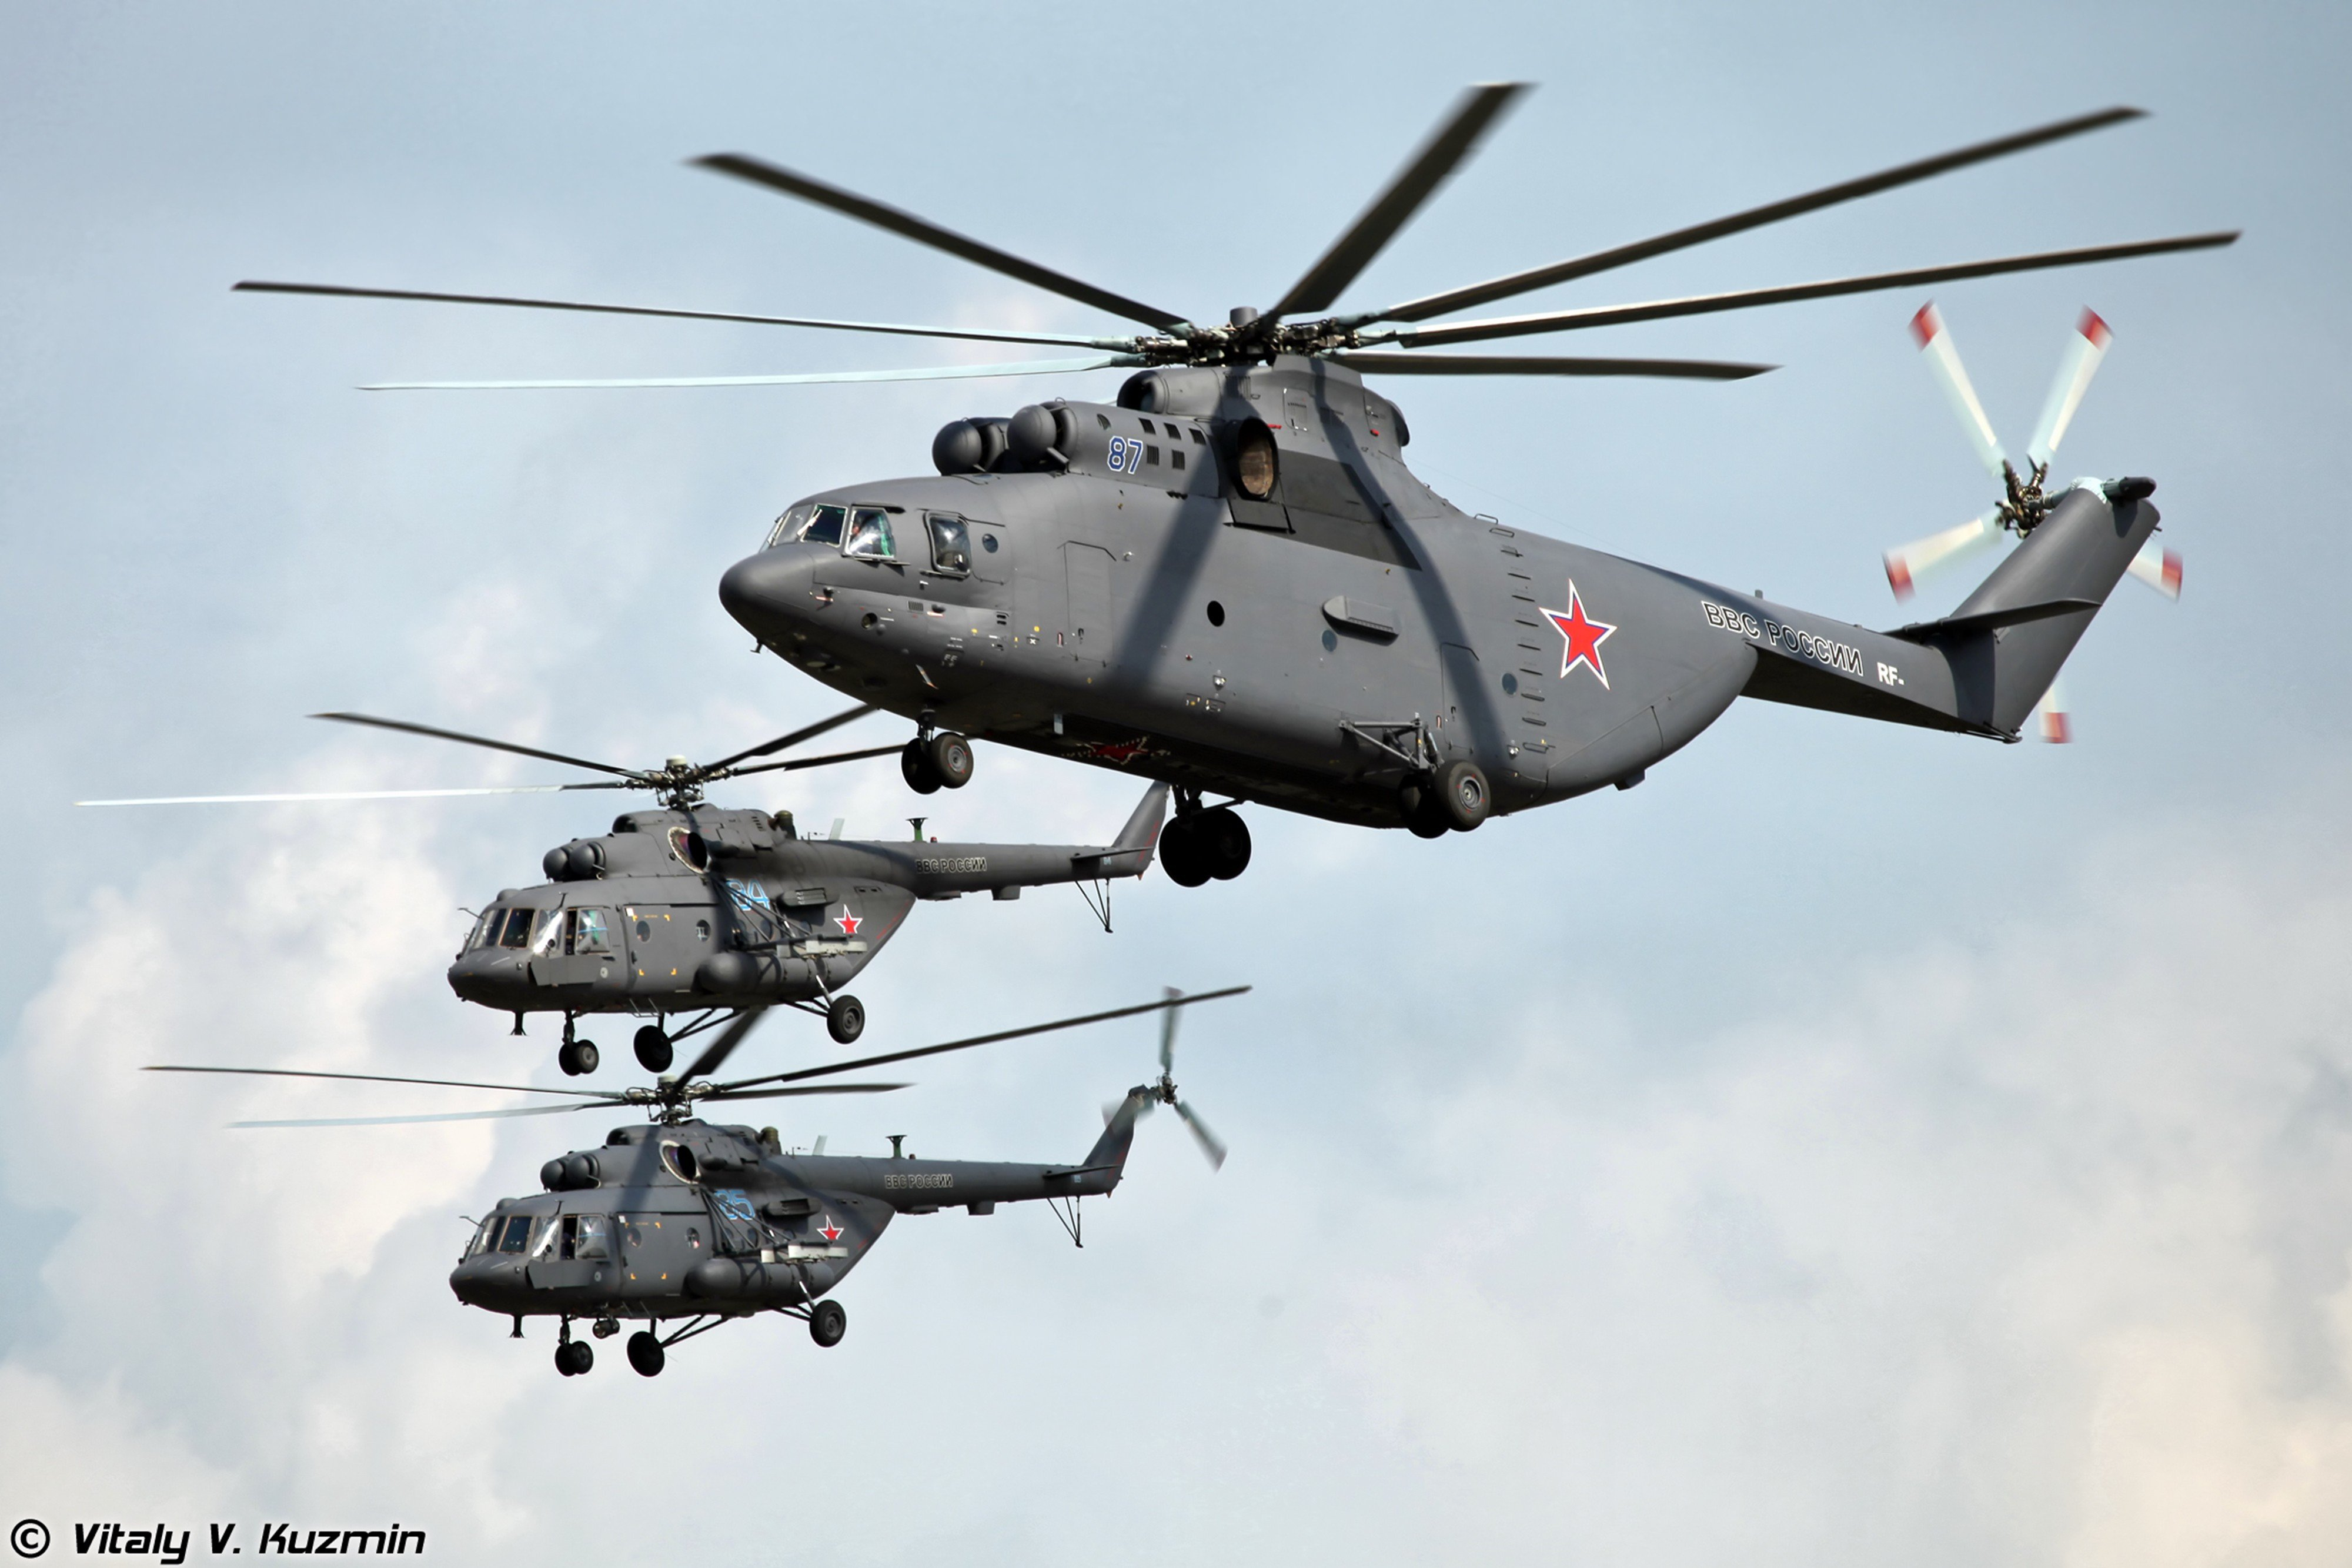 hind helicopters with Russia Helicopter Russian Army Military Red Star Mil Mi Mi26 on Russian Helicopters Development Import Substitution furthermore Transport And Attack Helicopter Mi 24 Hind 279092127 besides Imgp0618 Gilze10 Mil Mi 35 Czech Air Force additionally Lhelicoptere Mi 24 Cree La Panique Chez Les Rebelles En Syrie together with Watch.